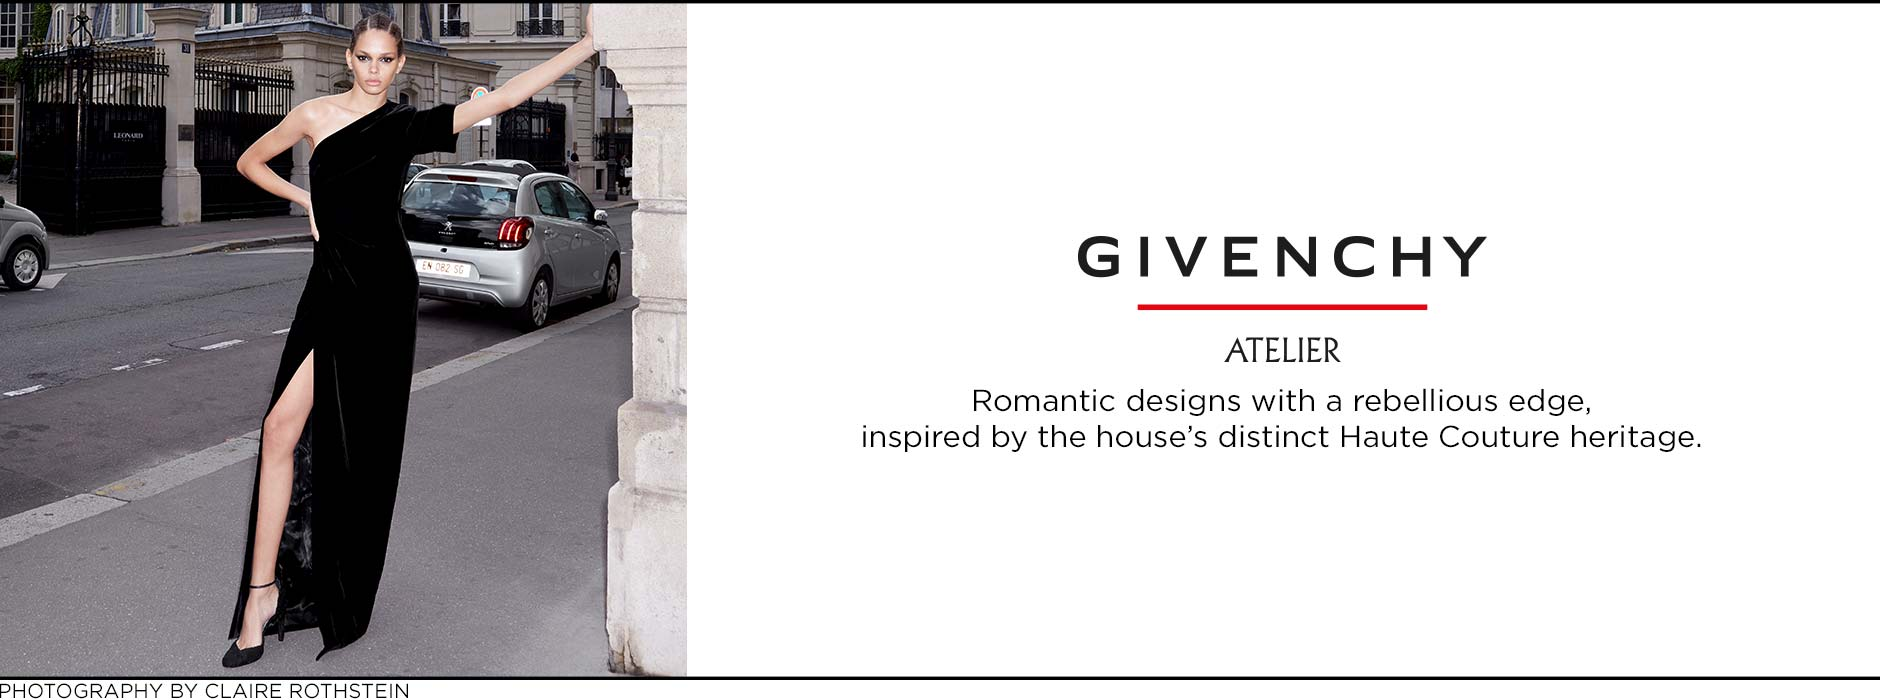 Givenchy Atelier